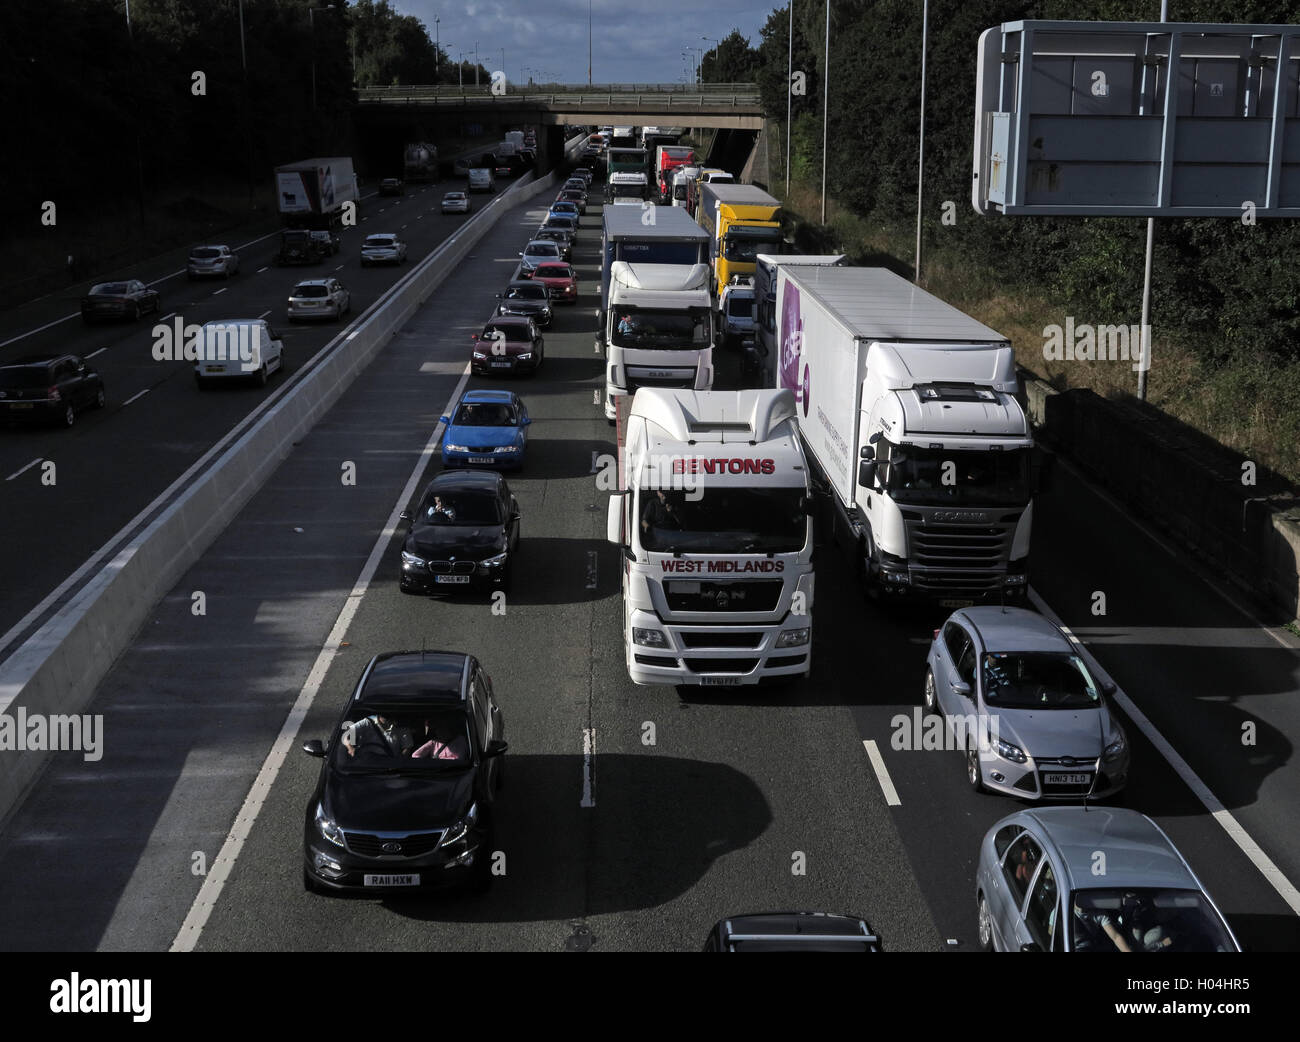 Traffic Congestion,Jams on the M6 Motorway,Warrington,Cheshire,England,UK - Stock Image